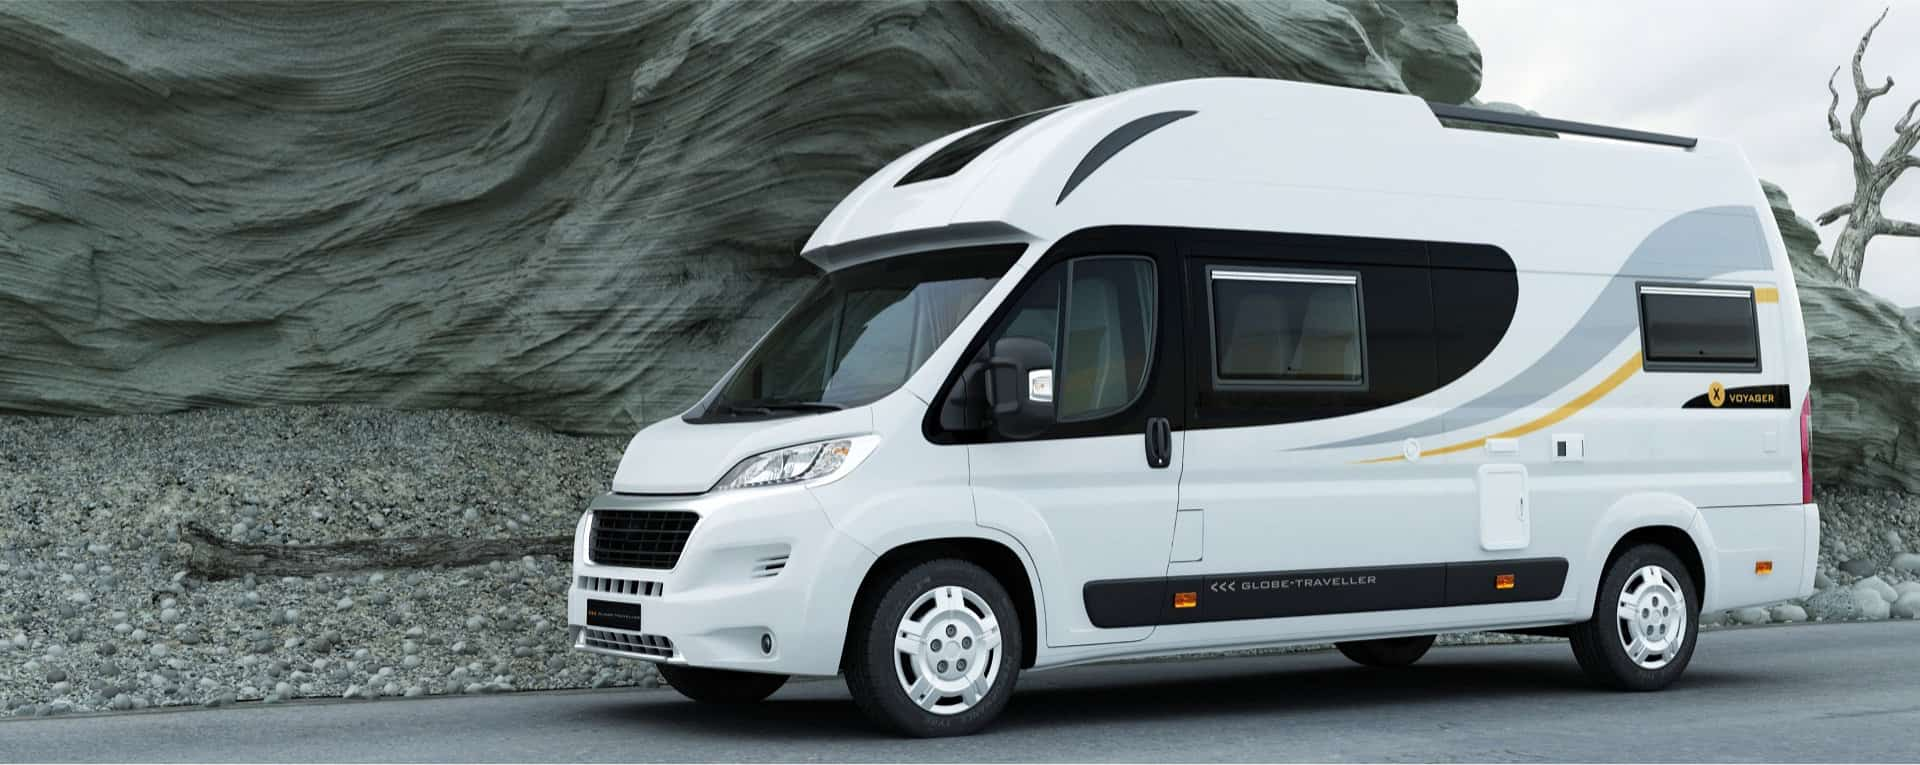 Best Van For Camper Conversion >> The best RV rental in Warsaw | motorhome.pl recreational vehicle rental company!